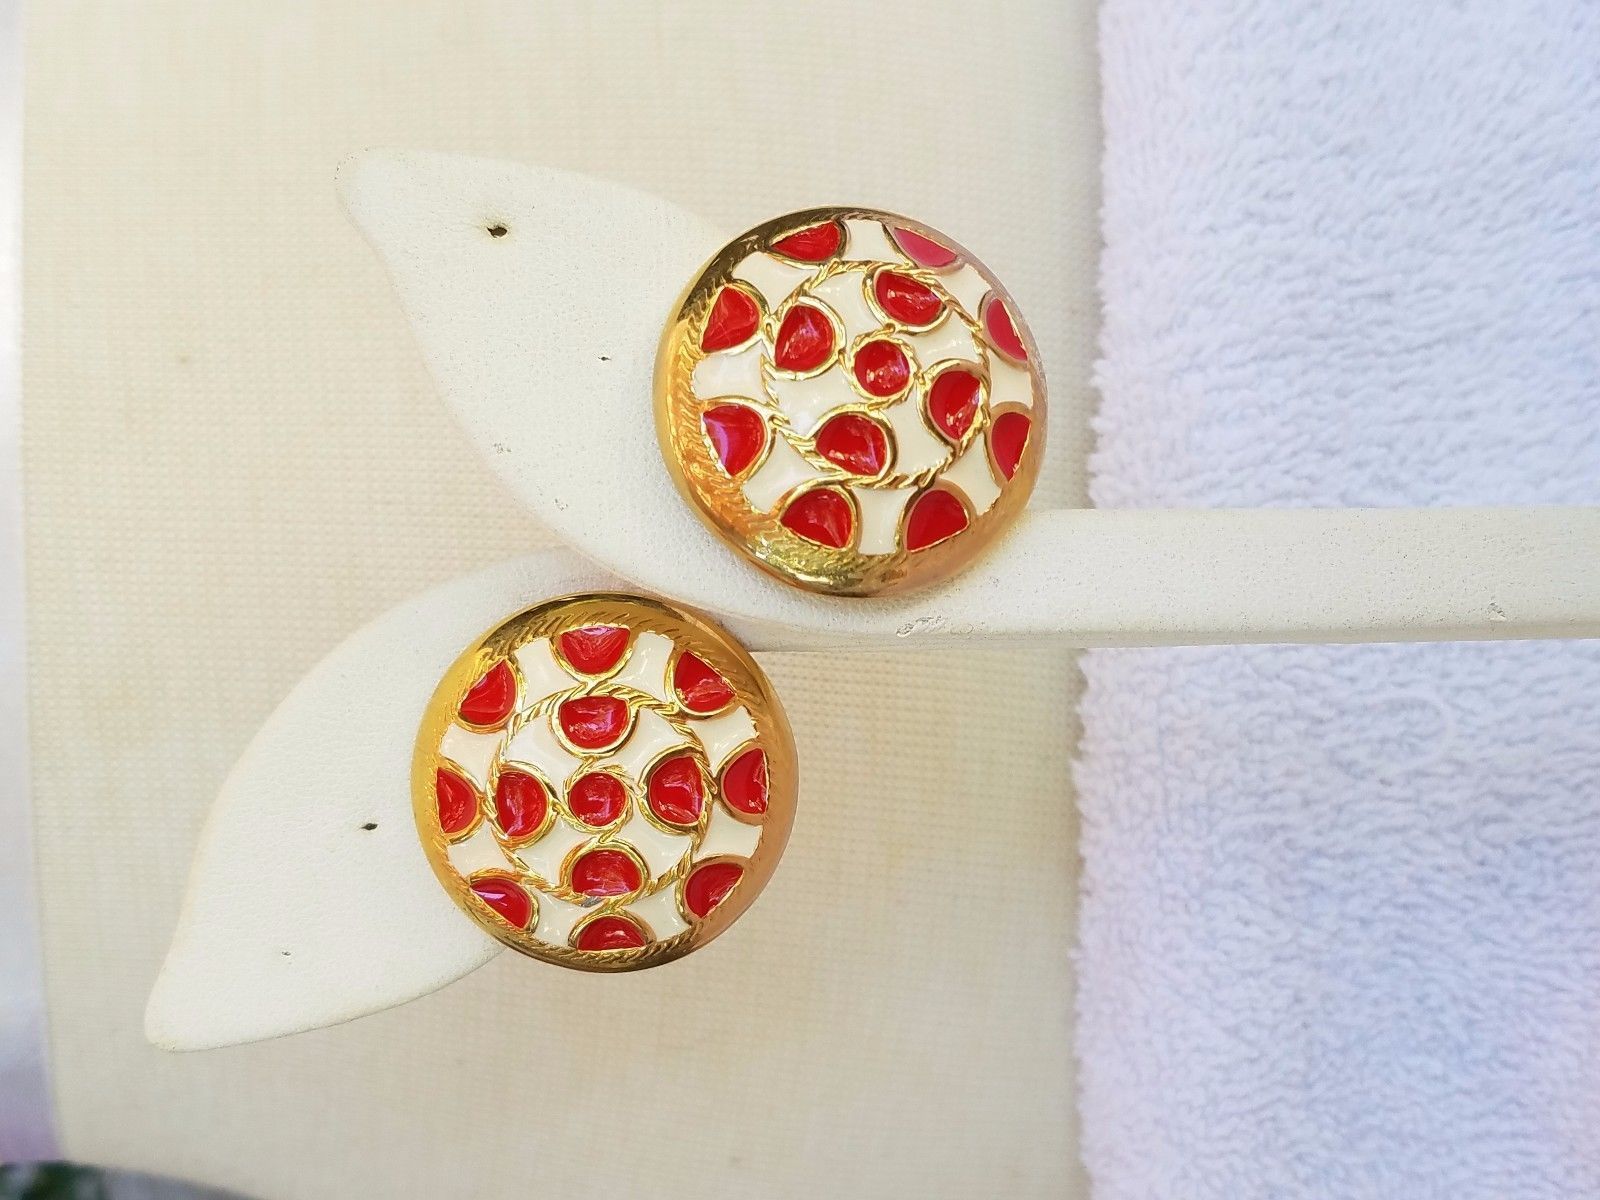 Red and White Enamel Vintage Earrings with Gold Tone Trim Pierced Earrings